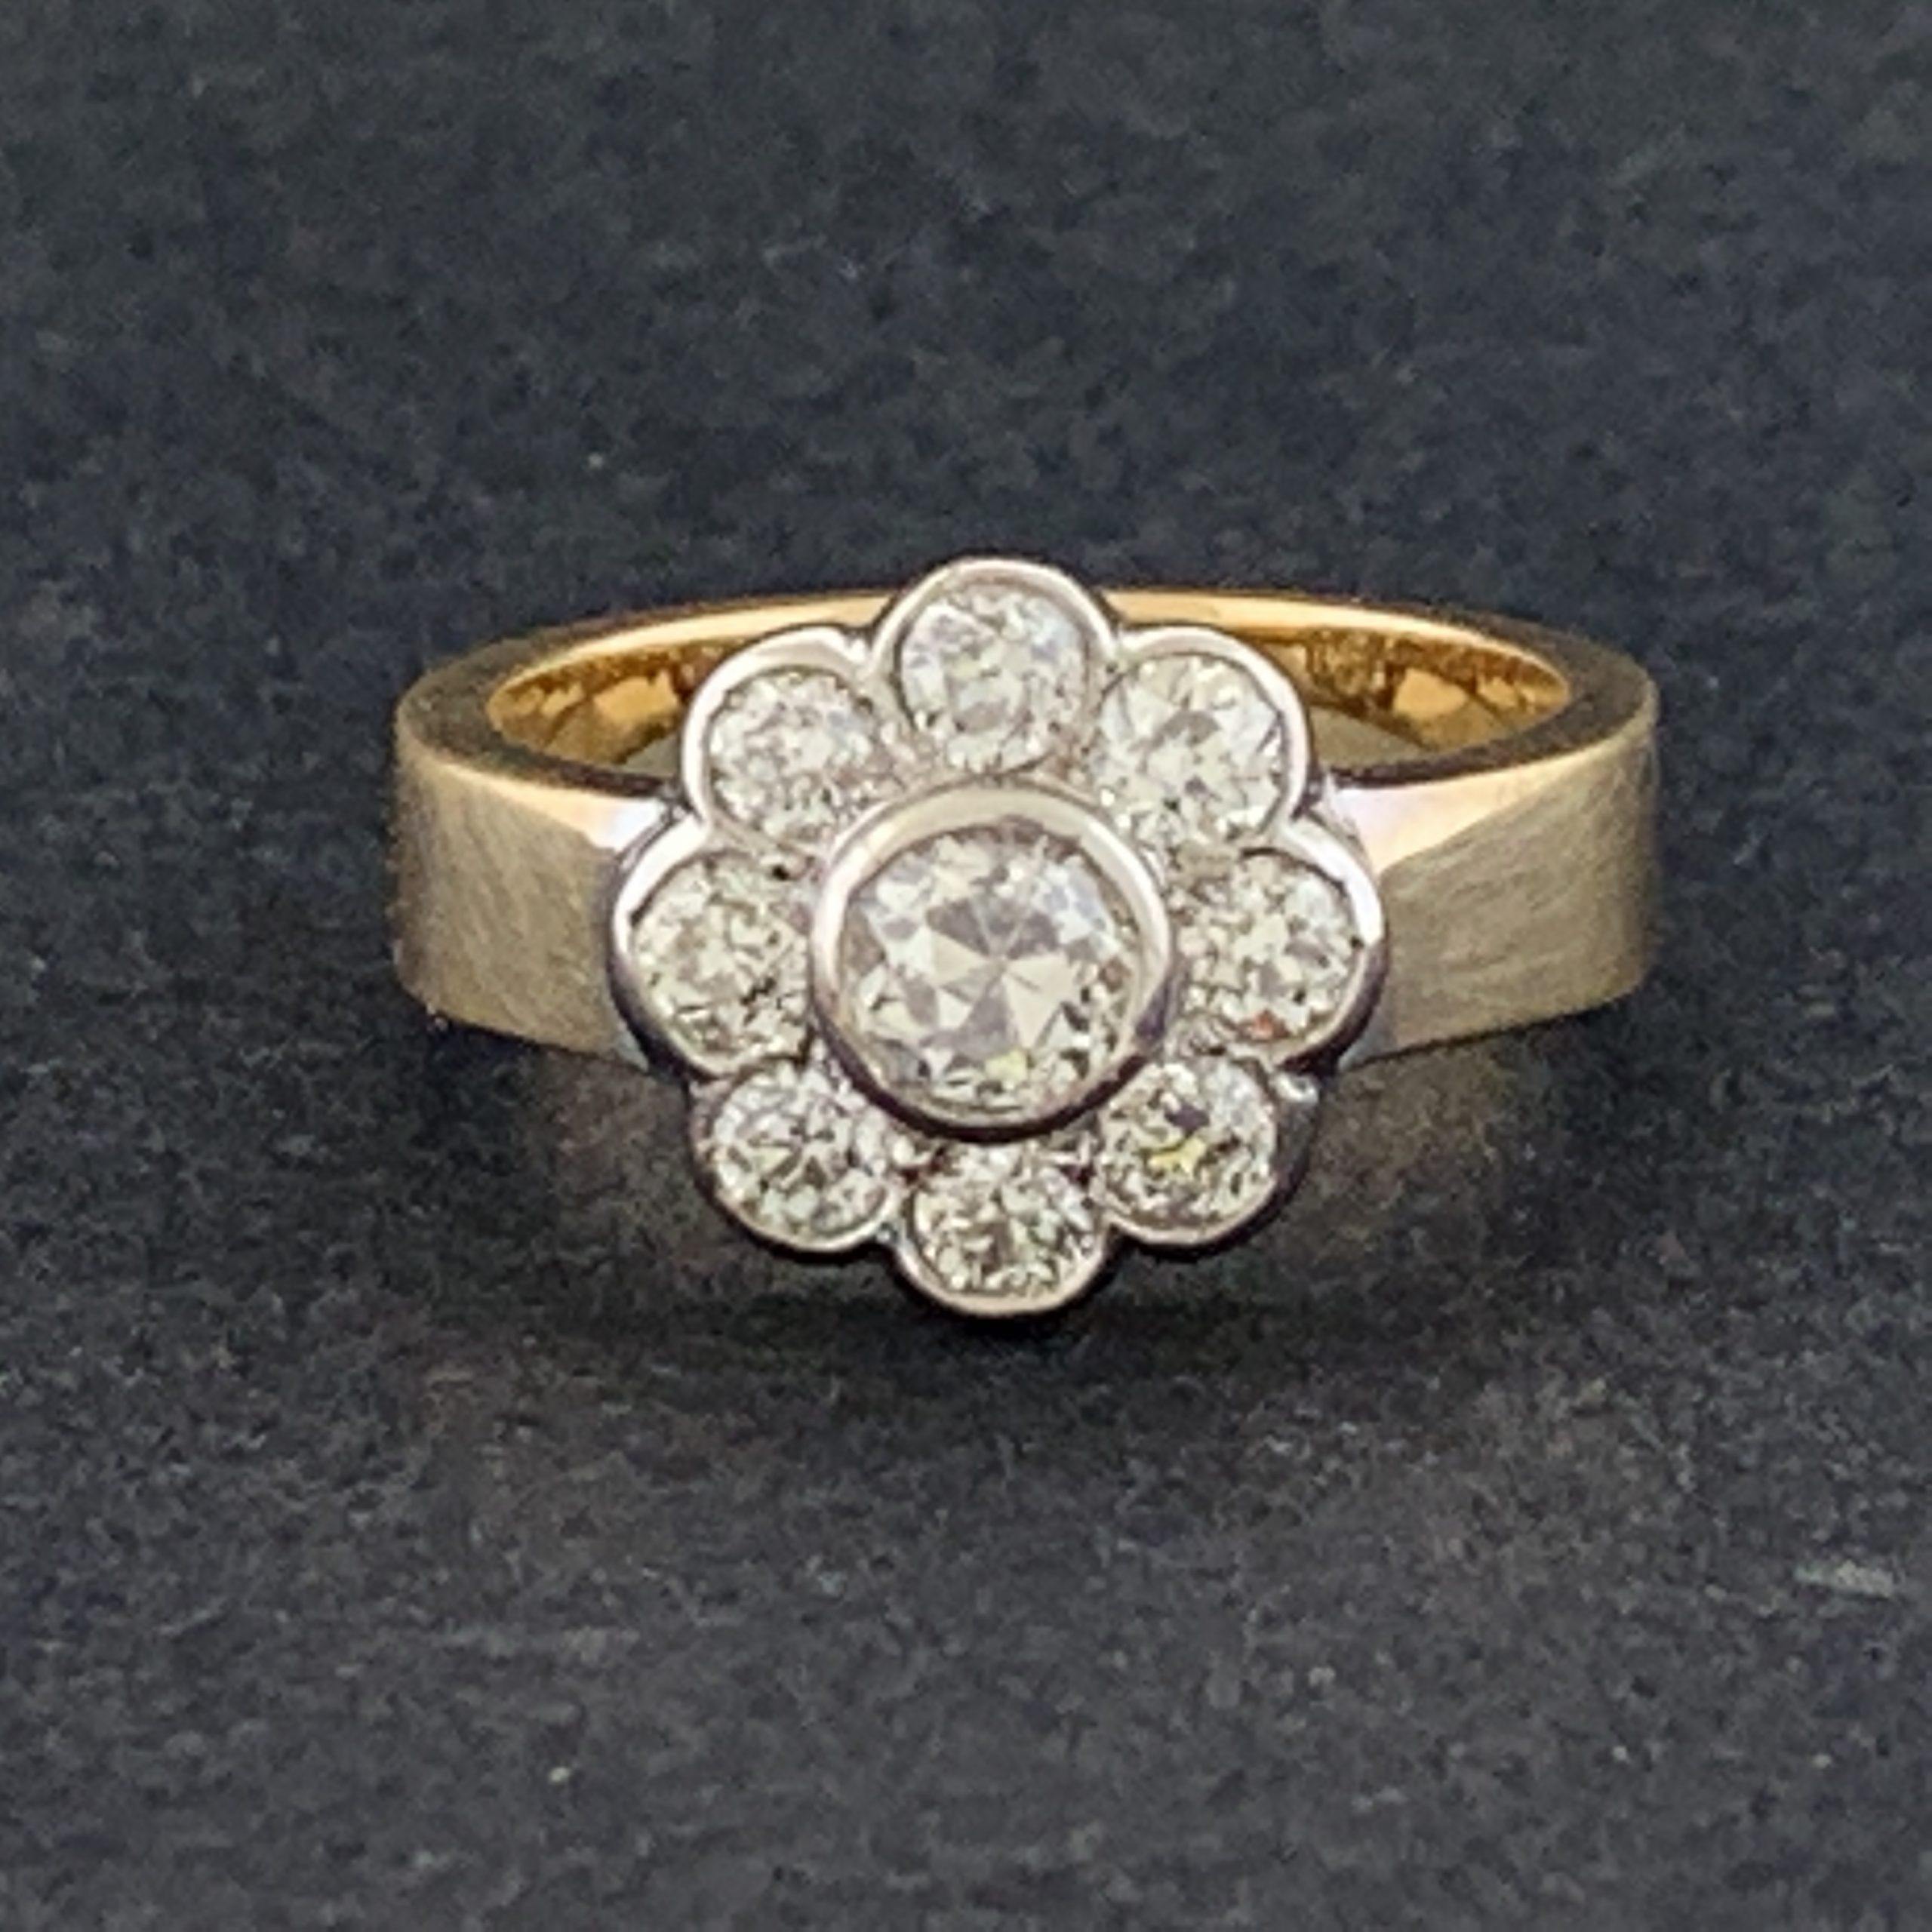 Modifications to an antique ring